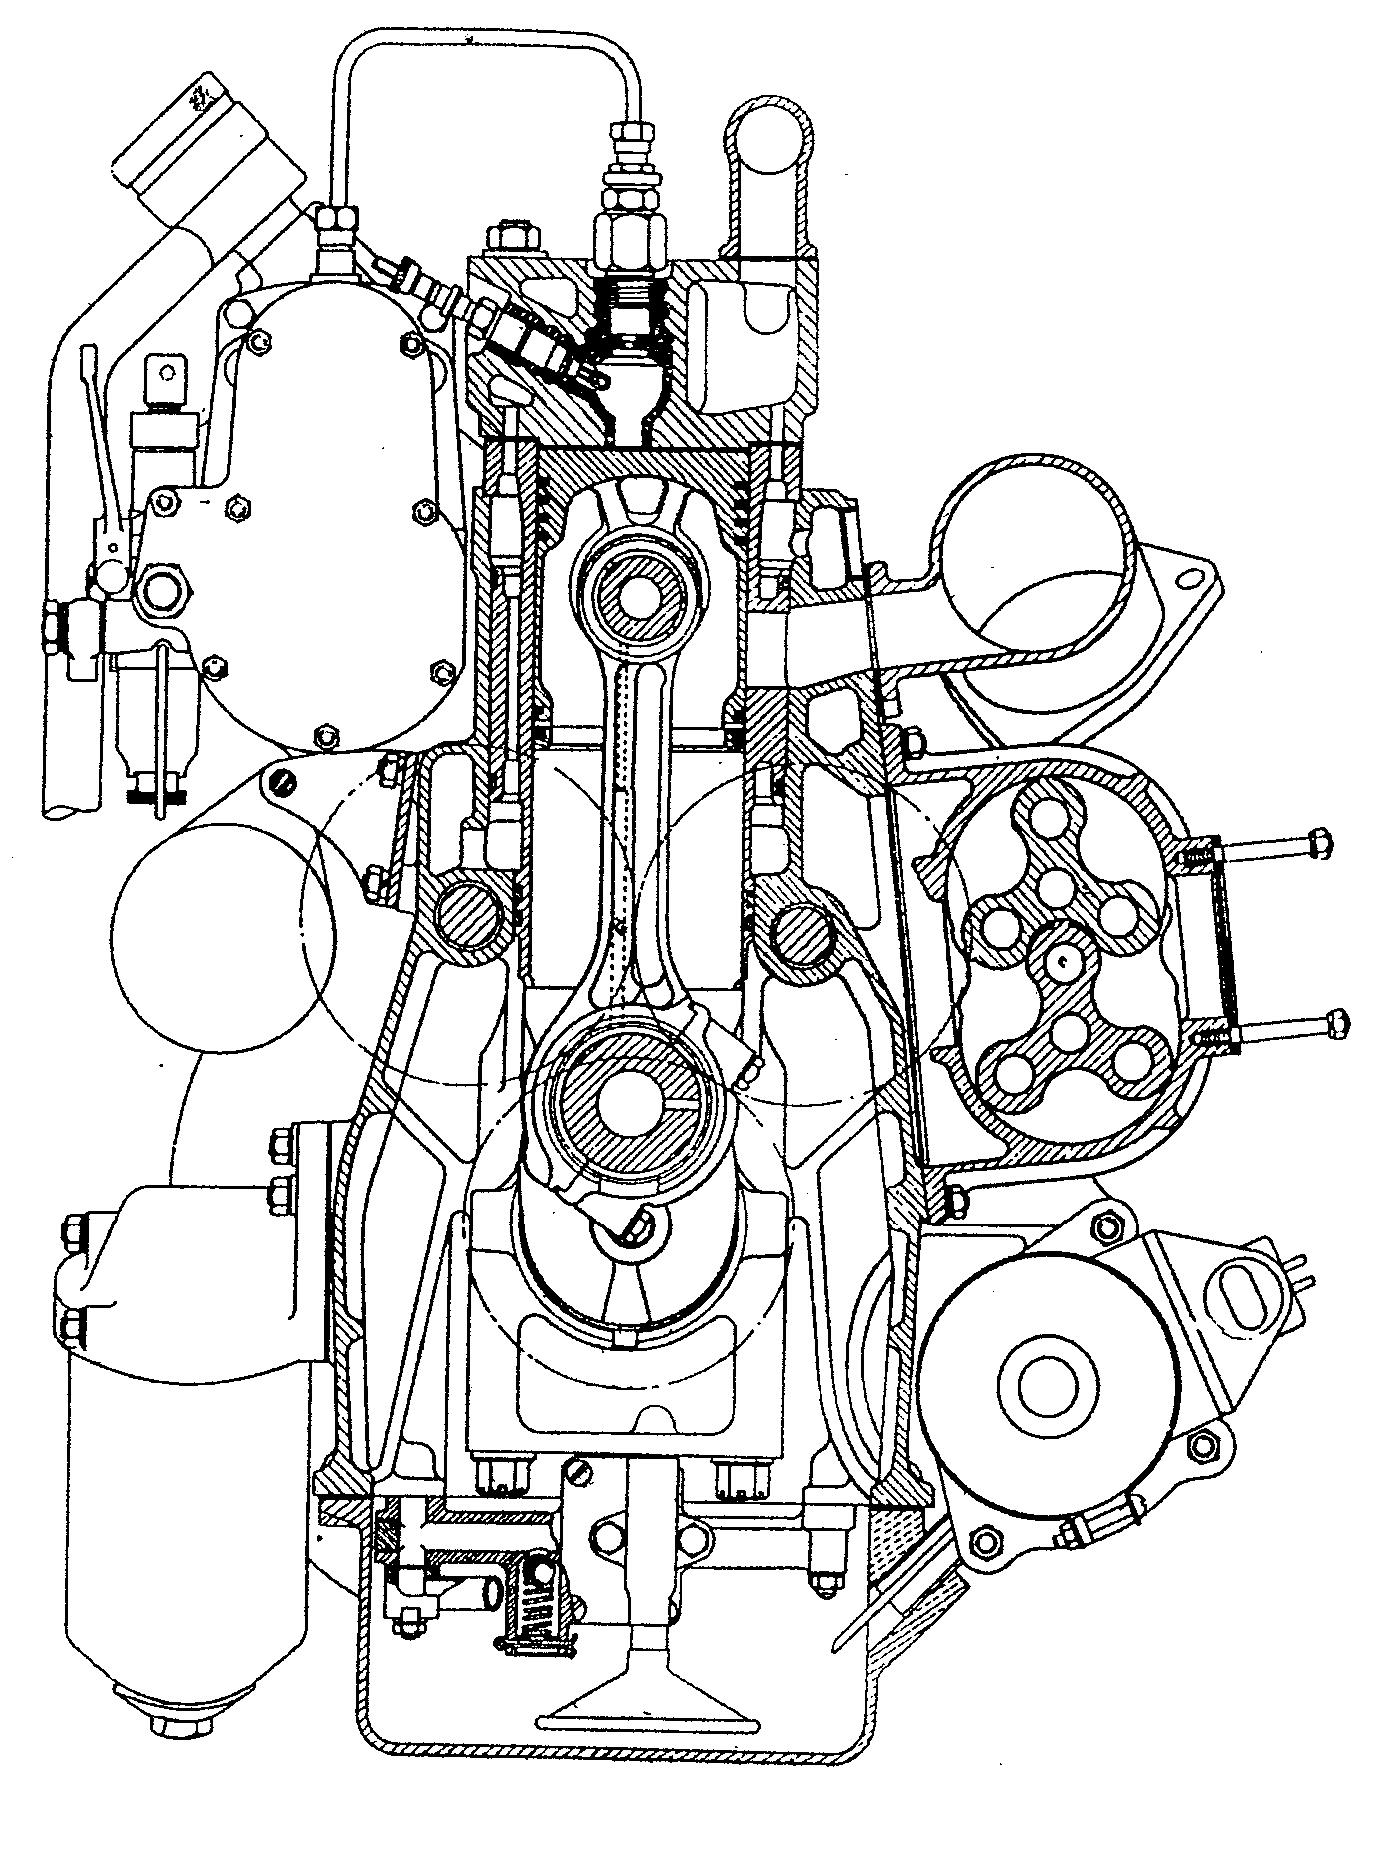 A Page Dedicated To The Automotive And Stationary Engines